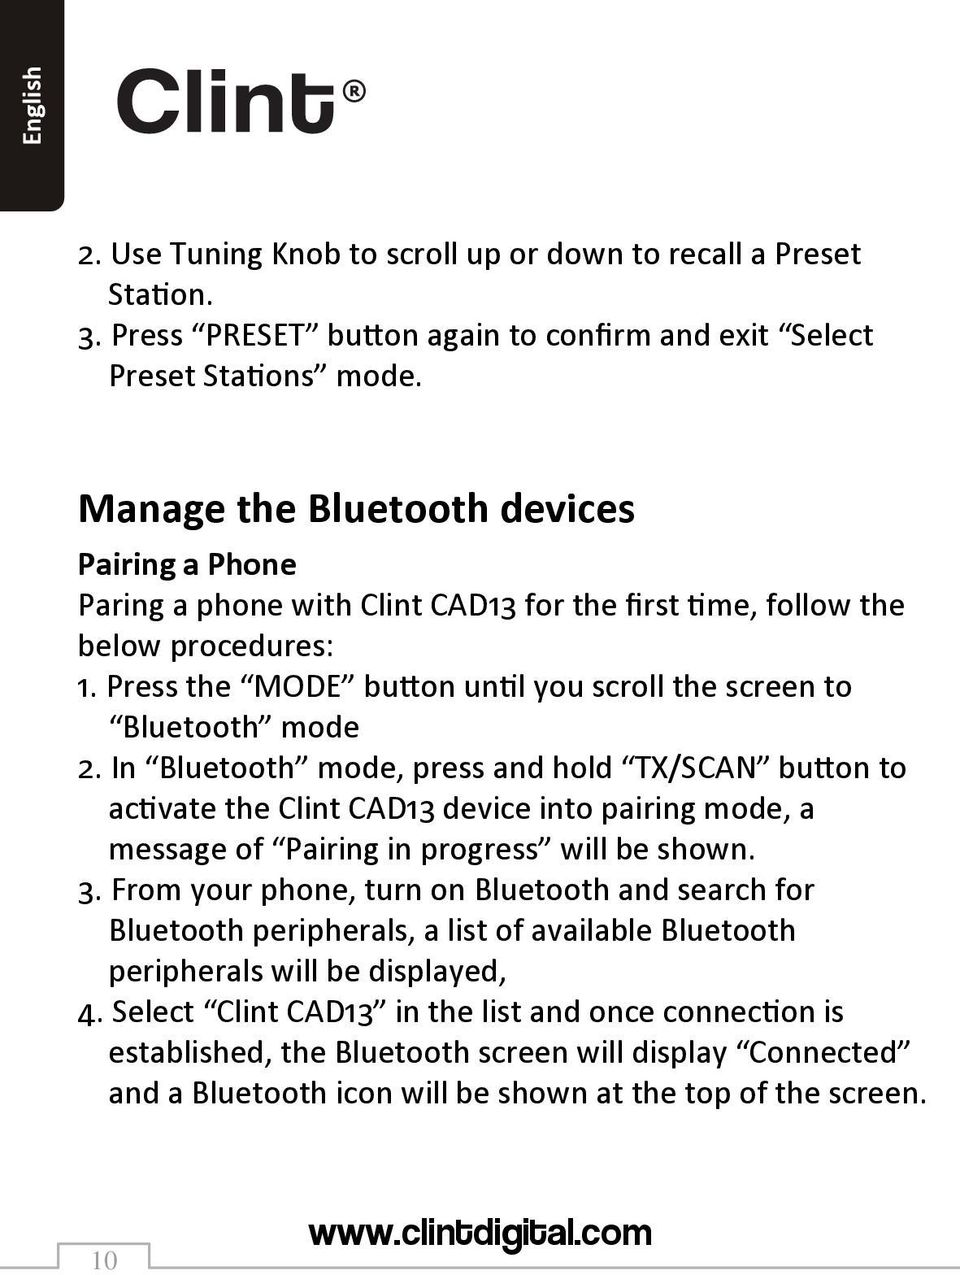 In Bluetooth mode, press and hold TX/SCAN button to activate the Clint CAD13 device into pairing mode, a message of Pairing in progress will be shown. 3.